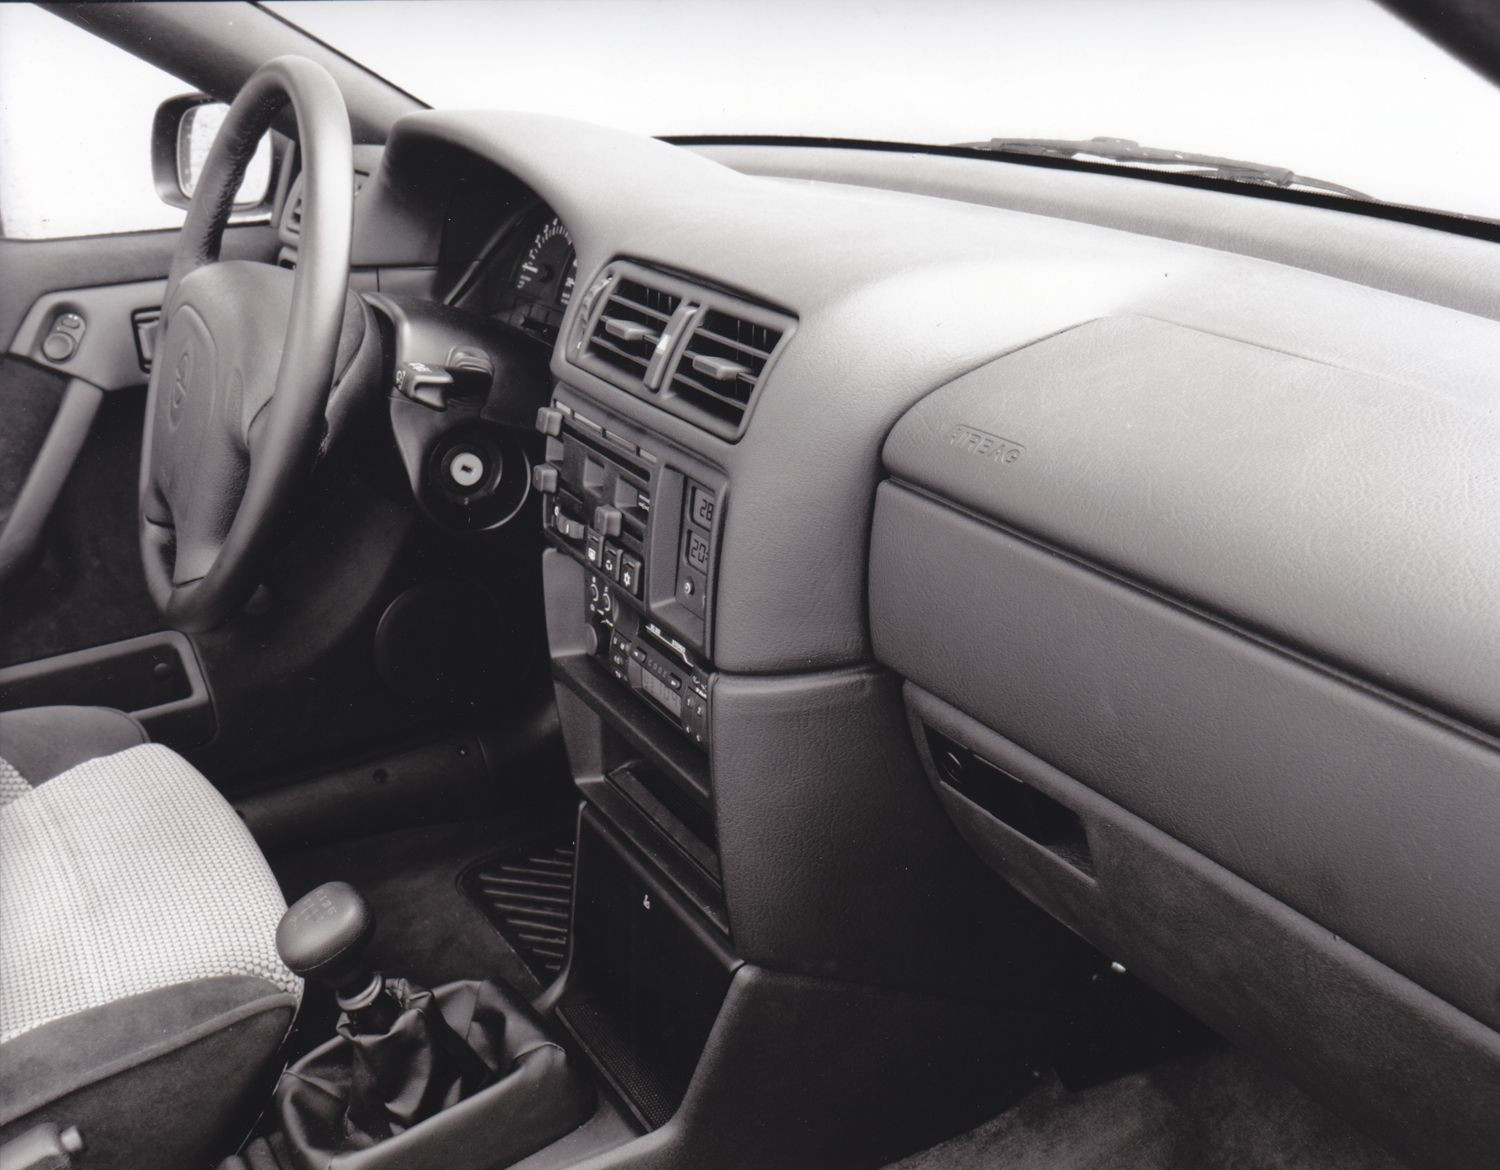 Opel Calibra Interieur Opel Calibra Interior With Full Size Airbags 9 93 Car